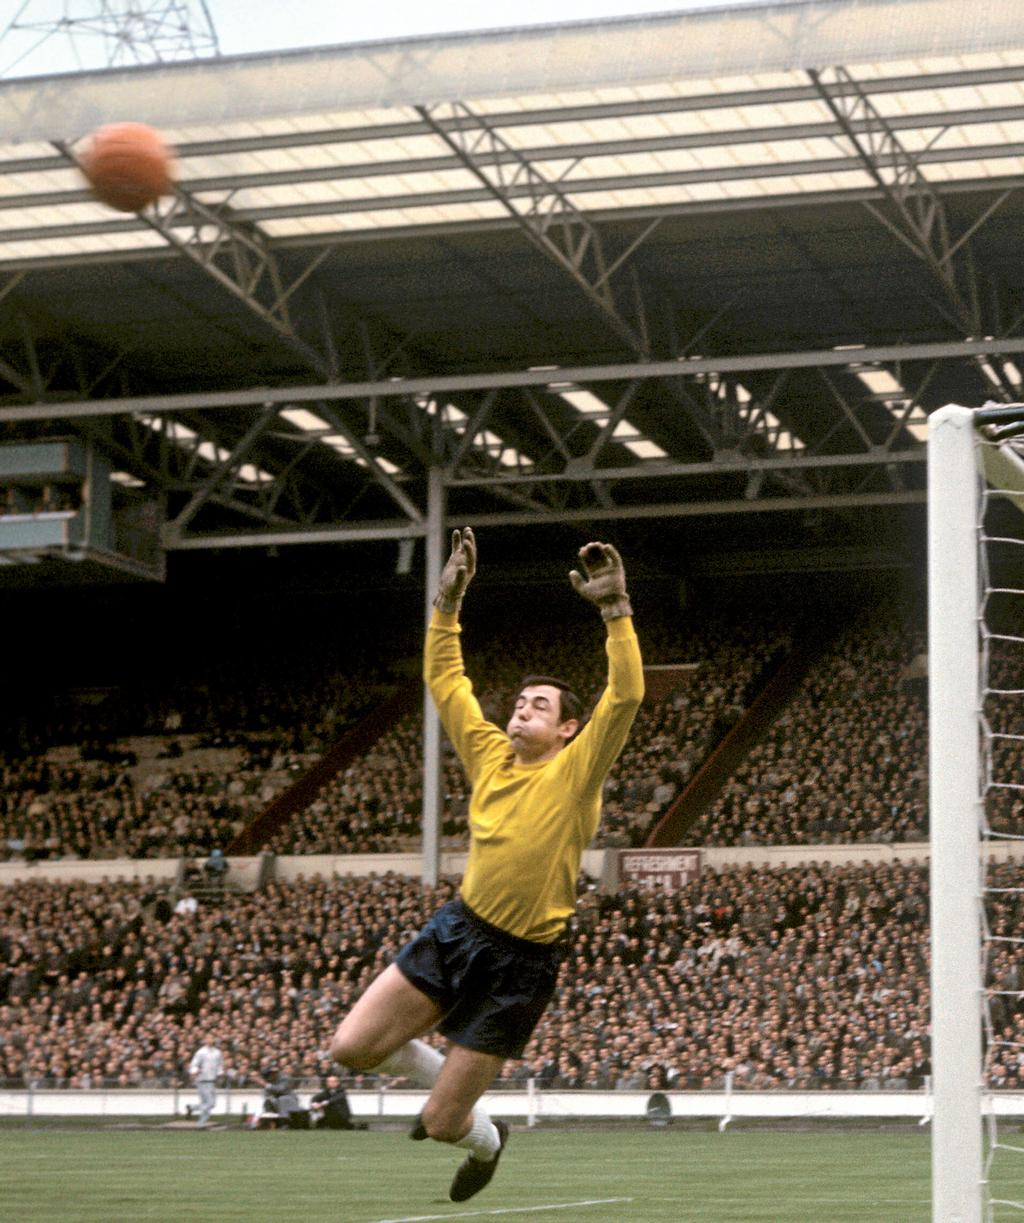 Gordon Banks en action lors d'un match contre la Hongrie, au stade Wembley de Londres, en mai 1965. AP